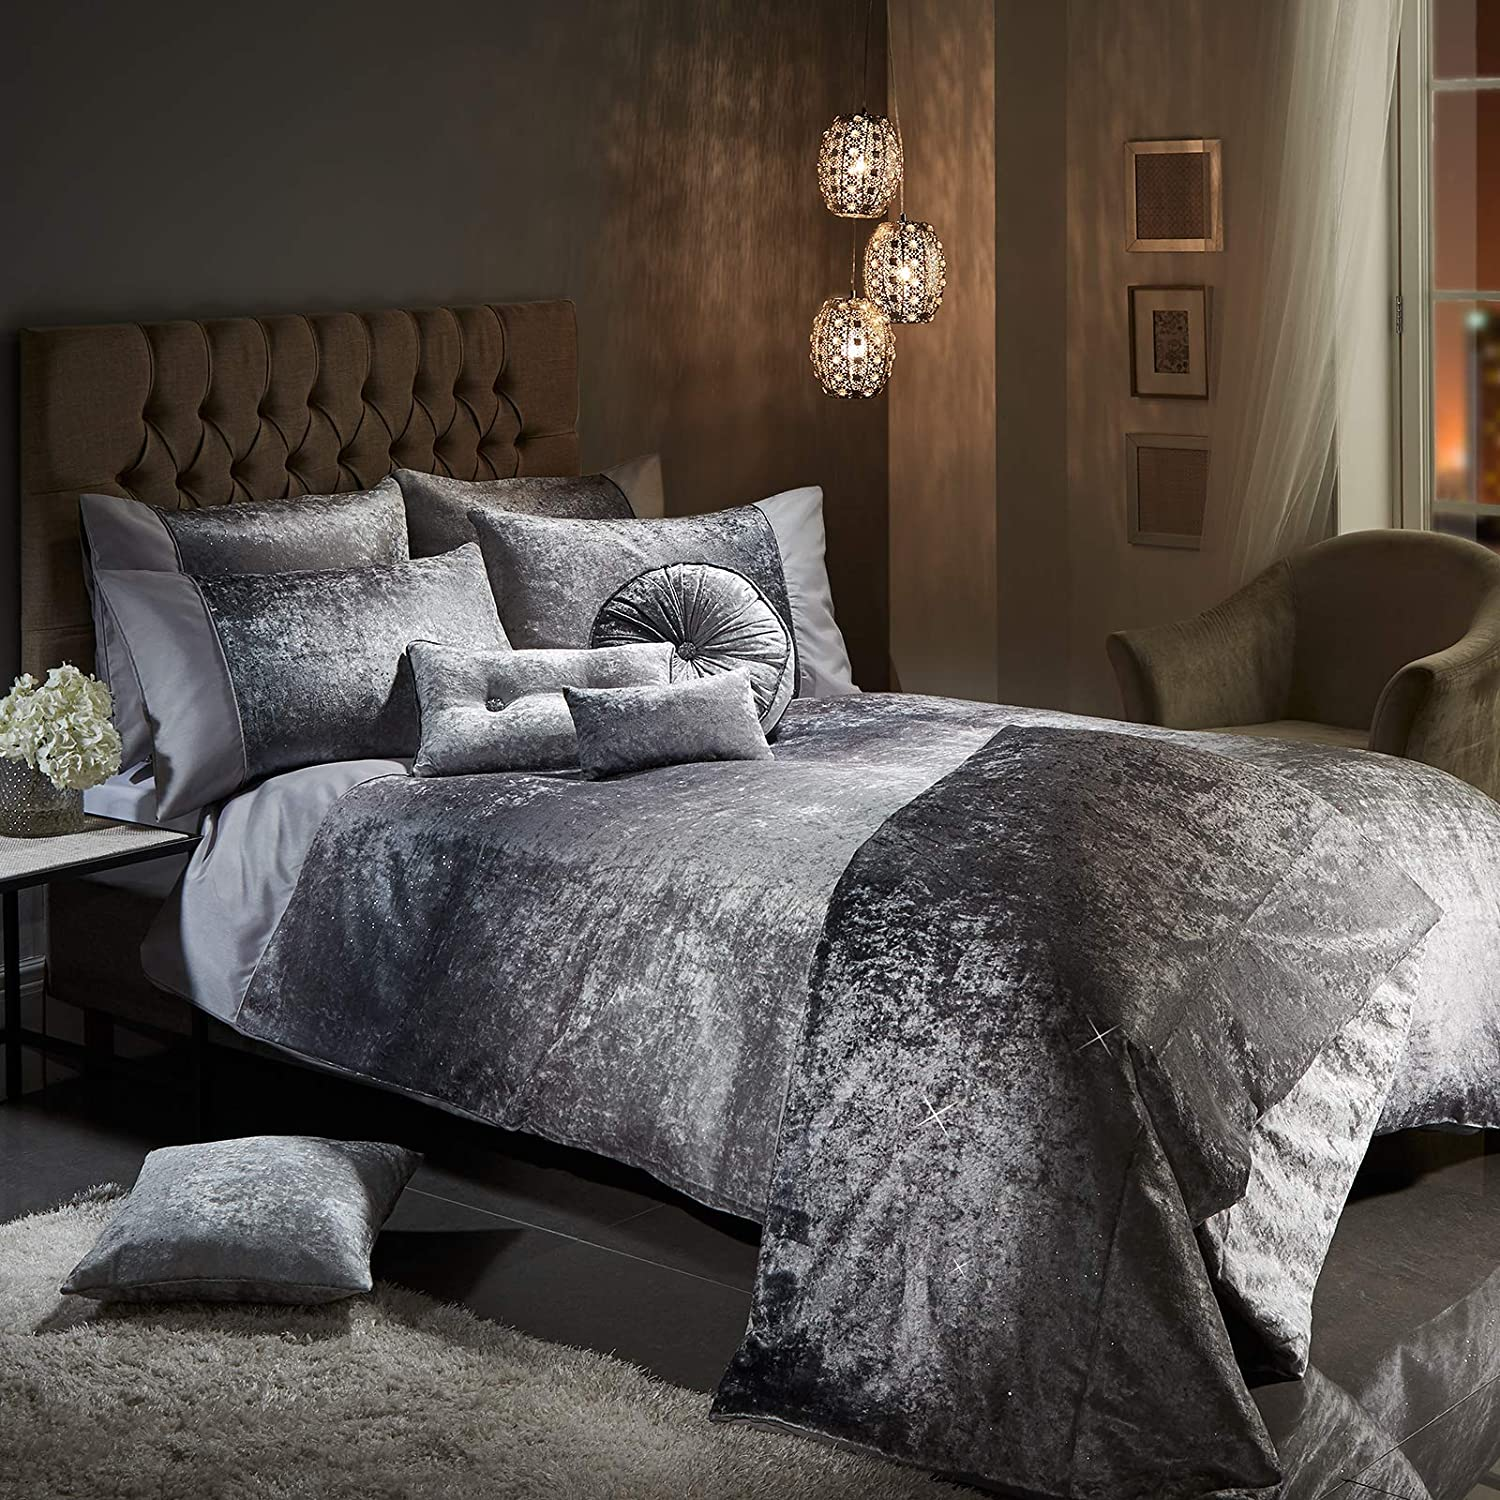 27789d23b9c36 Viceroybedding OMBRE Crushed Velvet Diamante Bedding Bedroom Collection  (Silver Grey Double Duvet Cover Set Including Pair of P/Cases):  Amazon.co.uk: ...